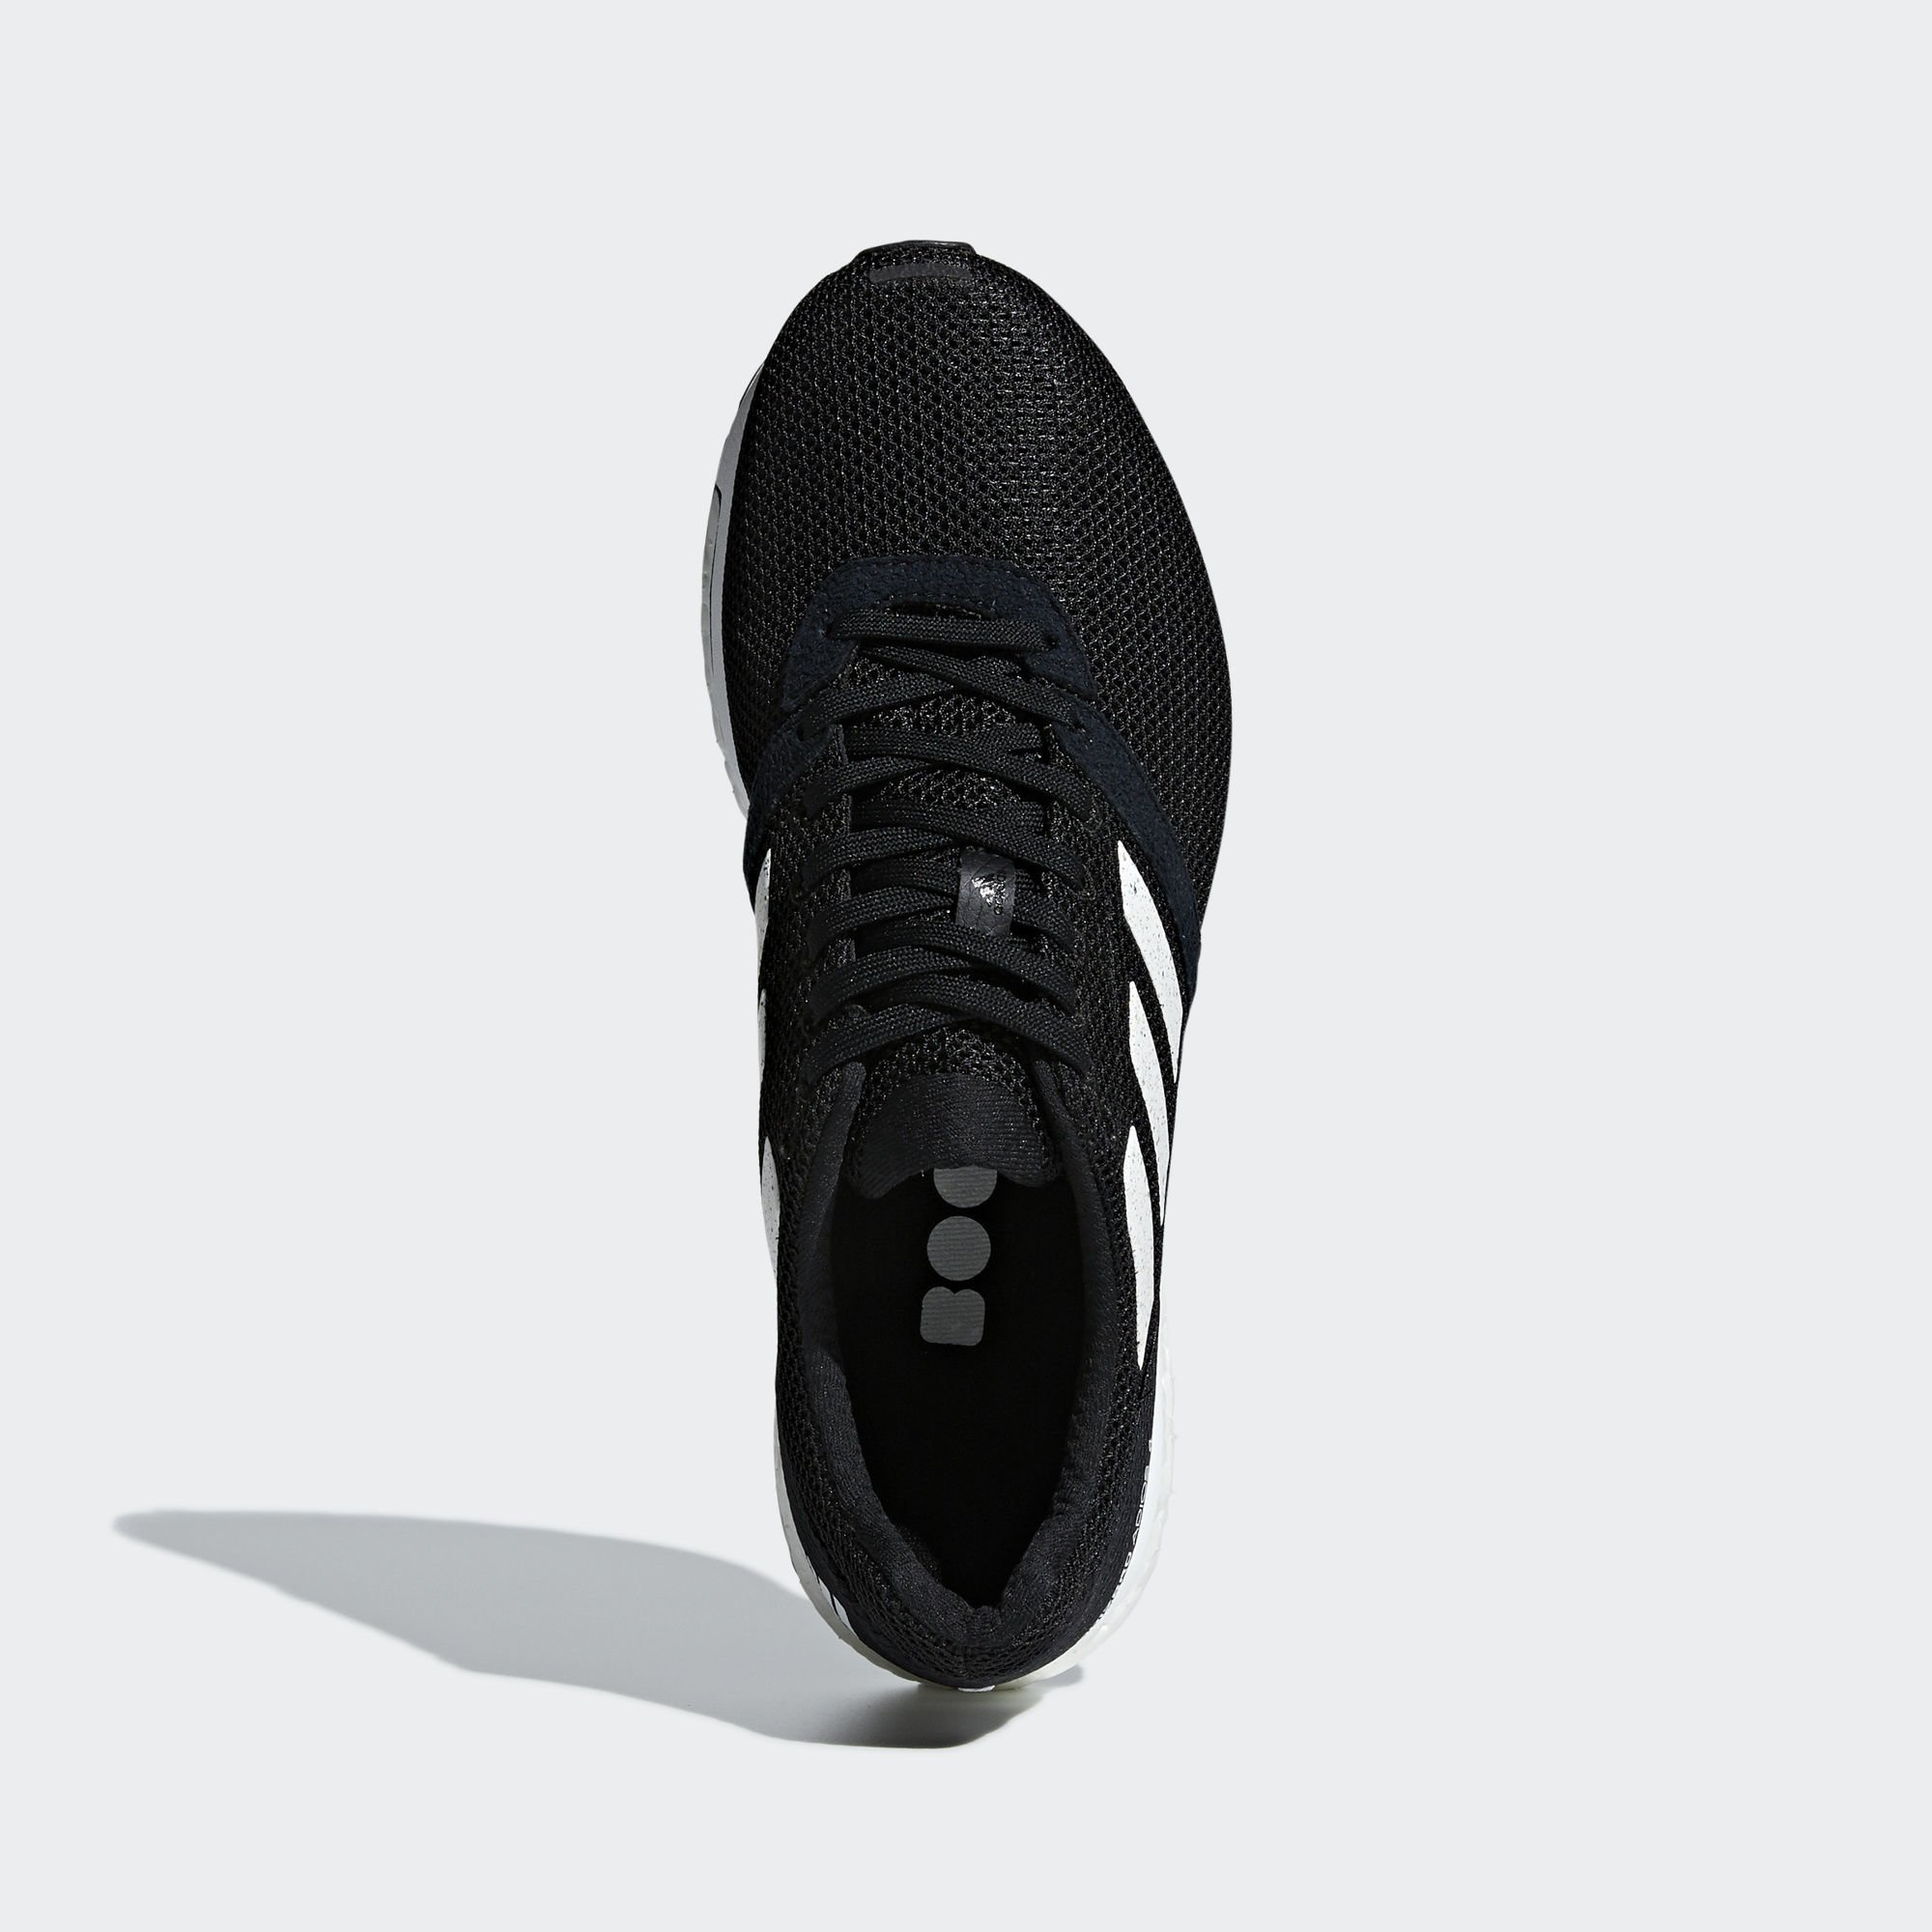 Adidas Adizero Adios 4 Core Black / Ftwr White / Core Black (B37312)